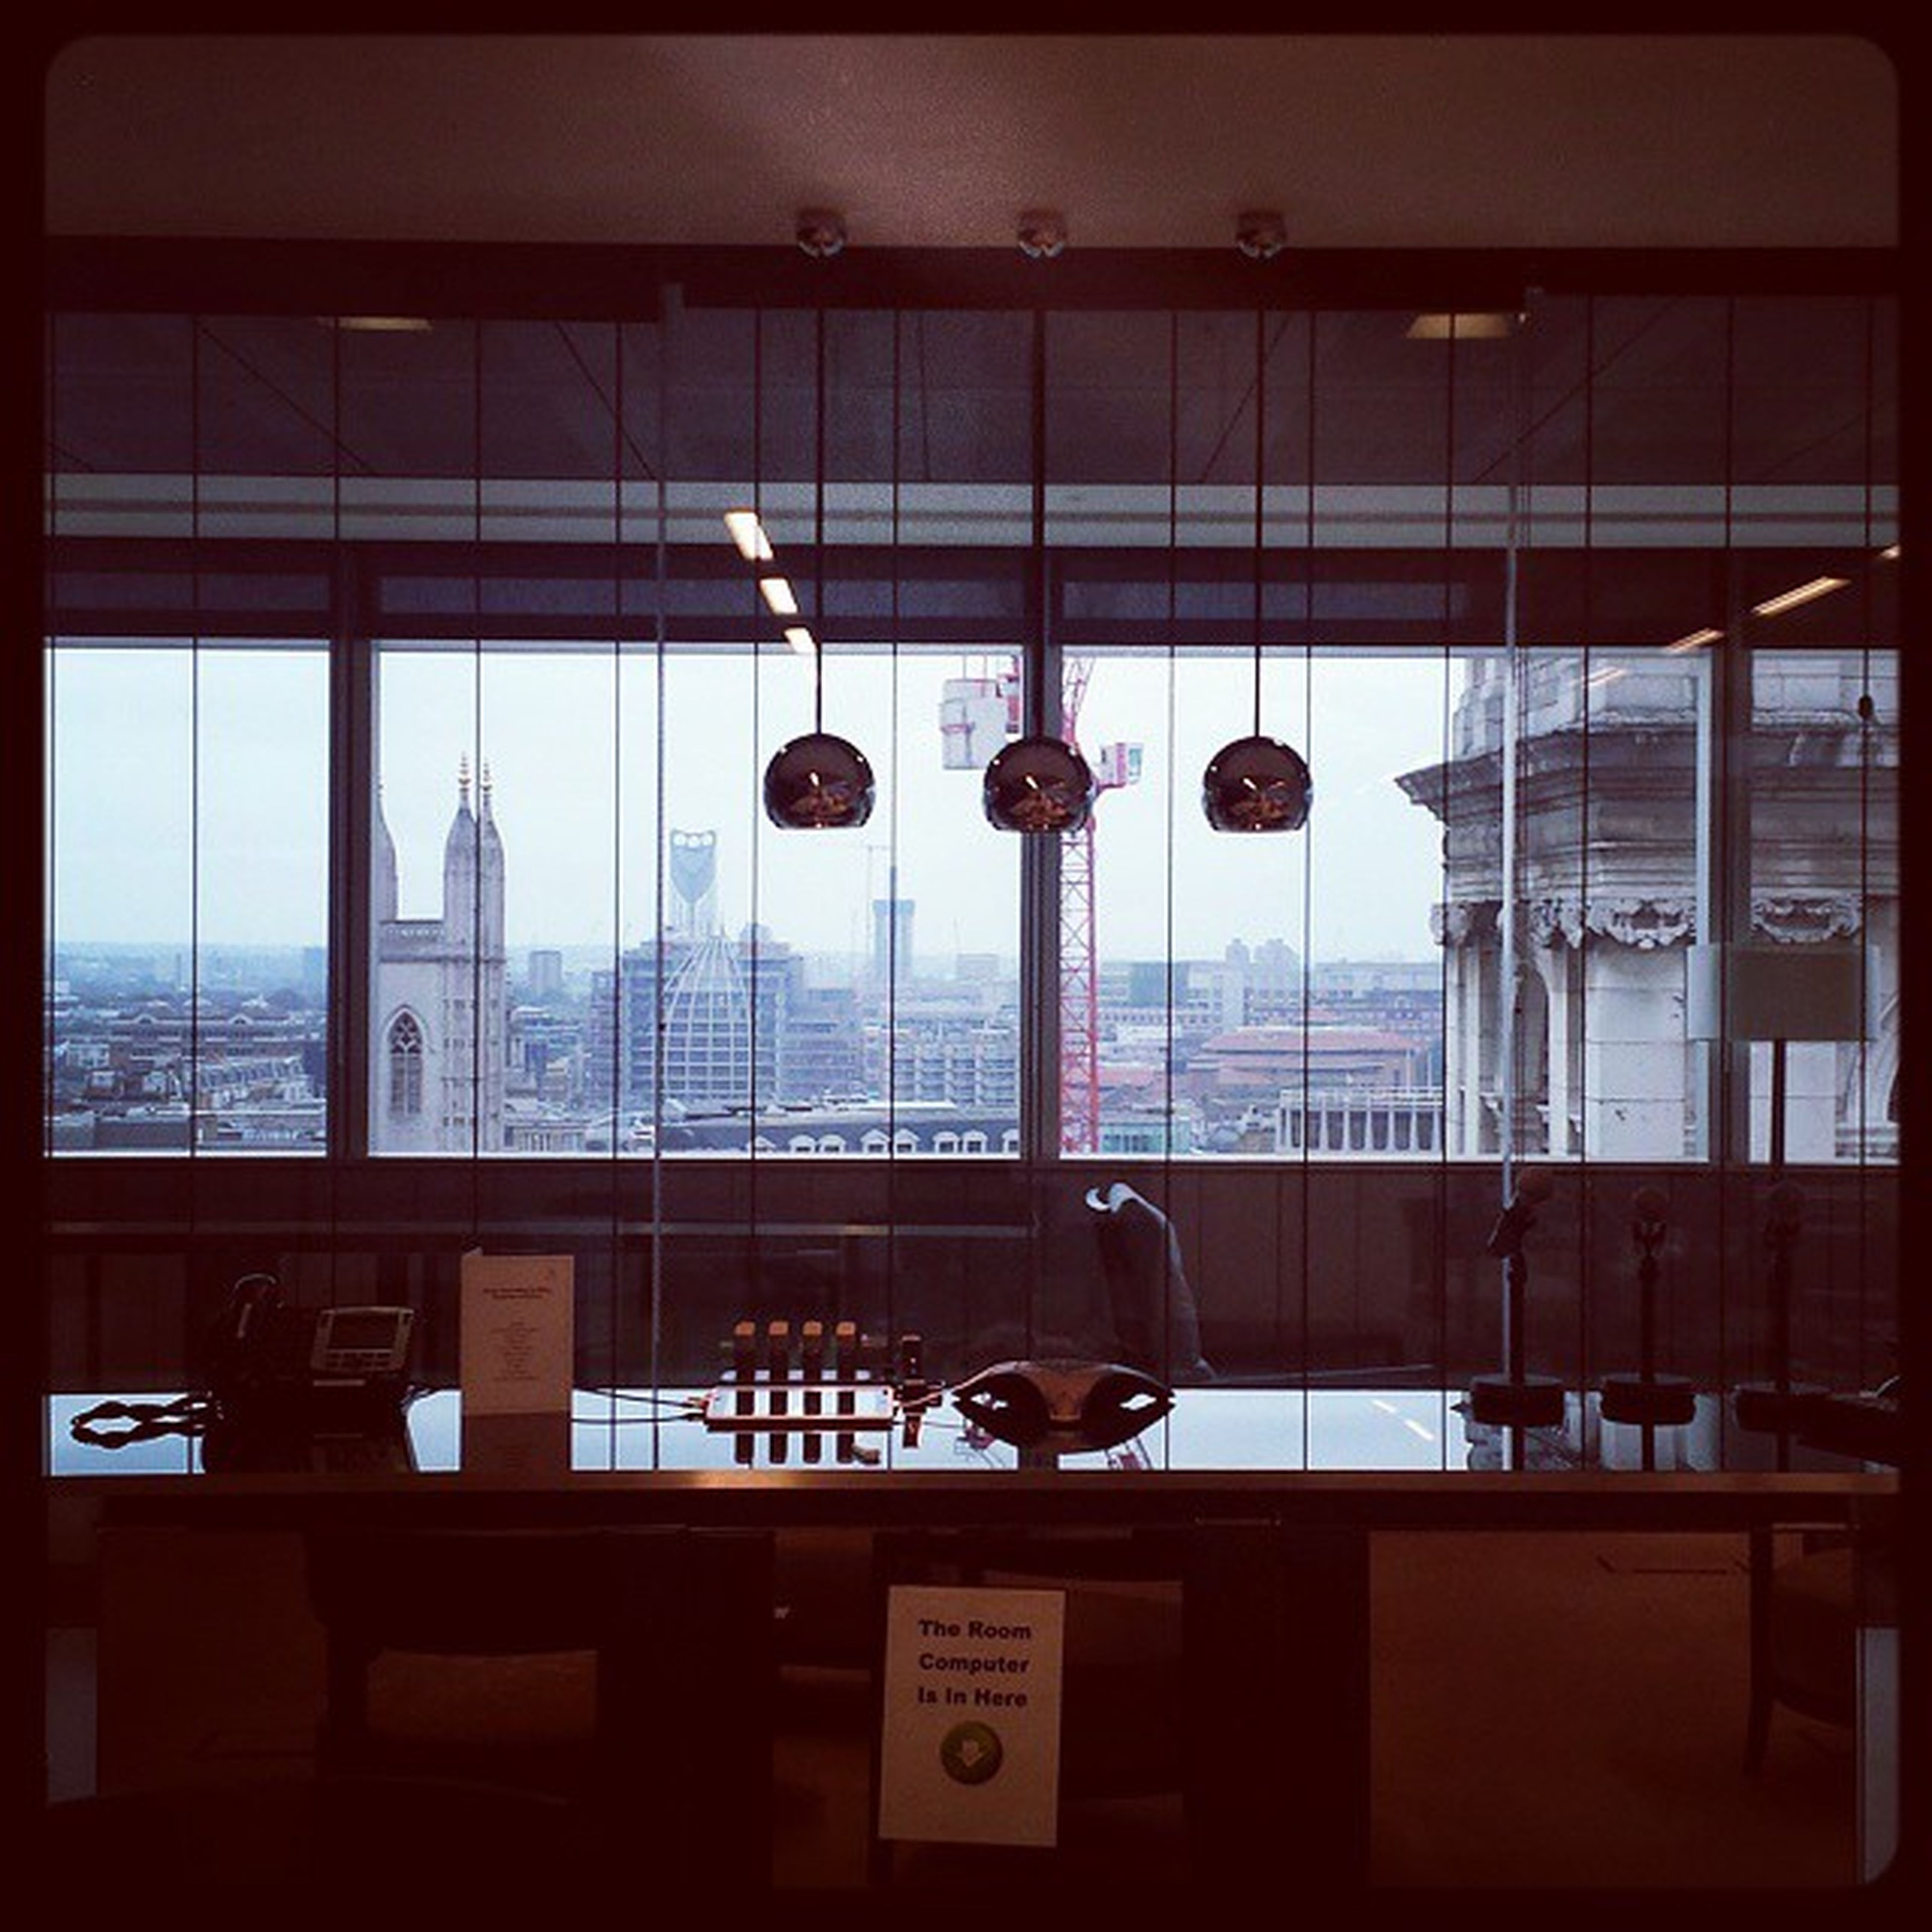 indoors, window, glass - material, architecture, built structure, transparent, transfer print, modern, reflection, communication, airport, auto post production filter, industry, city, day, no people, factory, public transportation, restaurant, building exterior